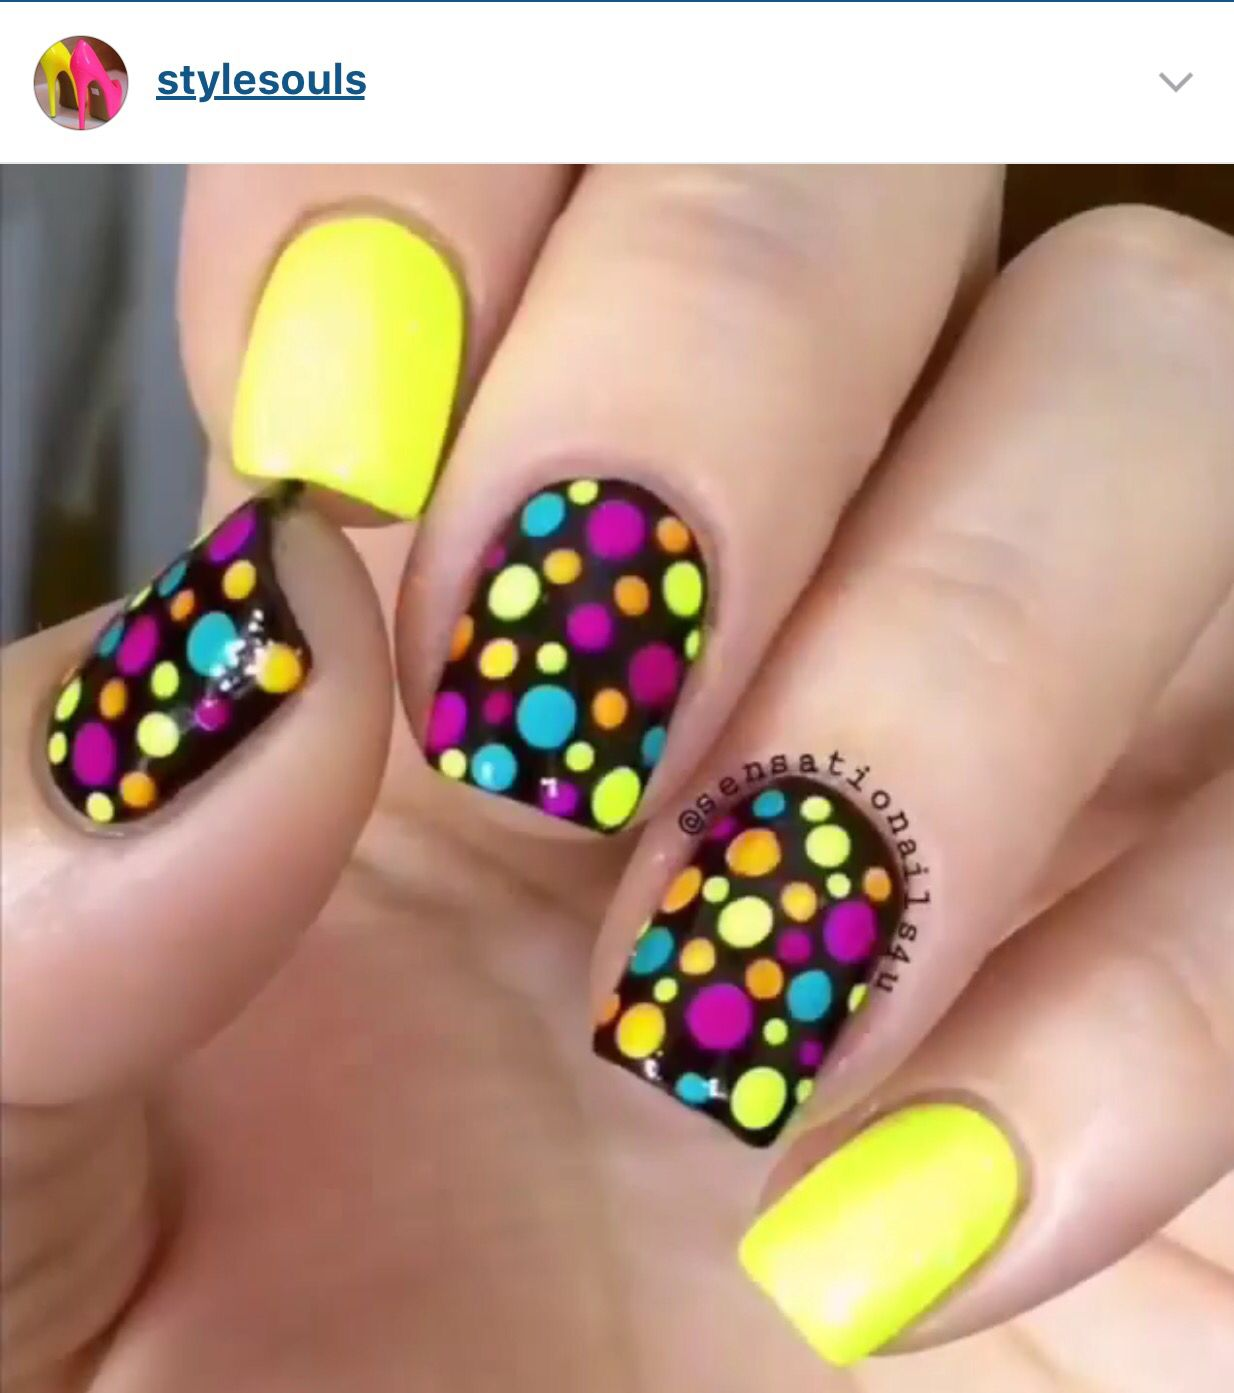 Pin by Jessica Wong on Nails   Pinterest   Colourful nails, Neon ...